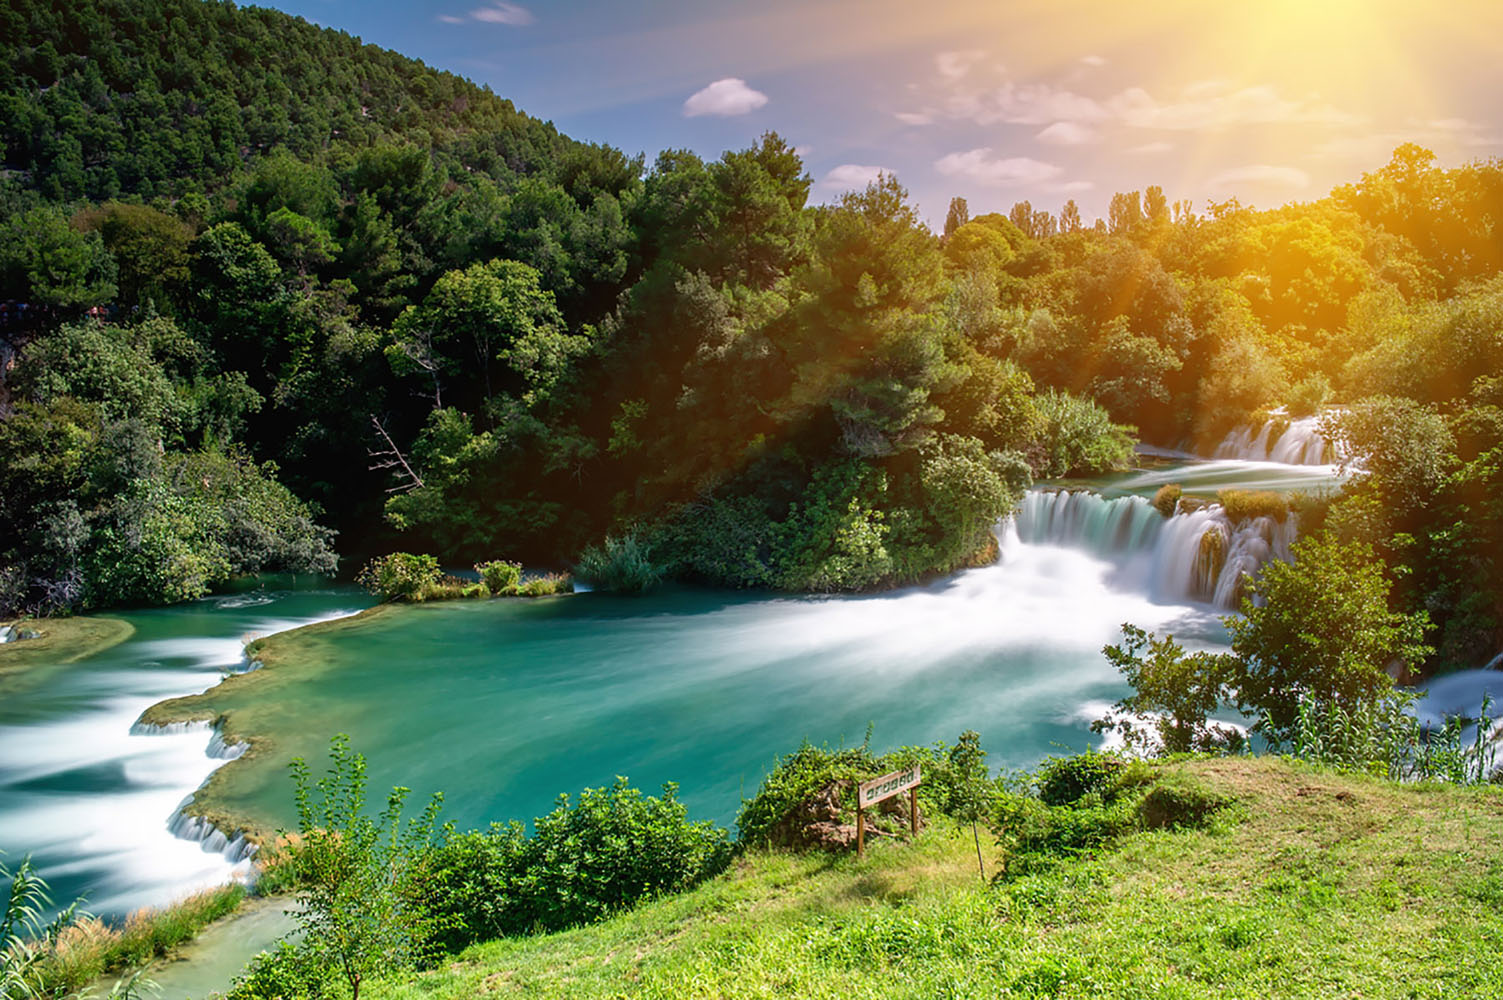 Fall in love with Krka's waterfalls while in Croatia.